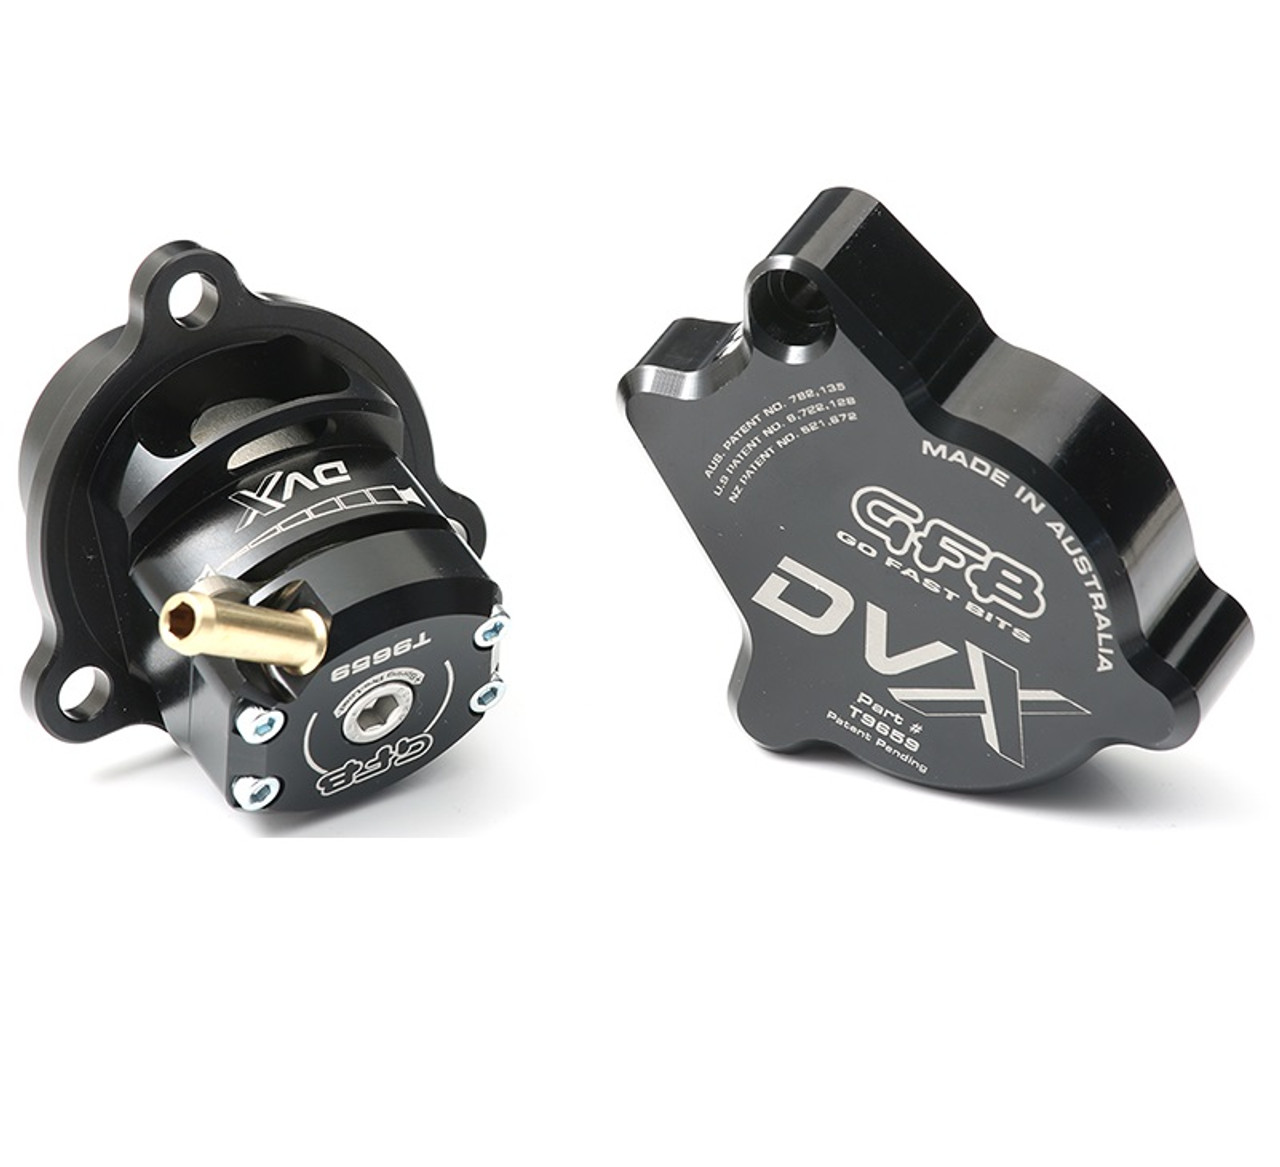 GFB DVX Suits Audi 8V S3 2014+ and Mk 7 Golf R